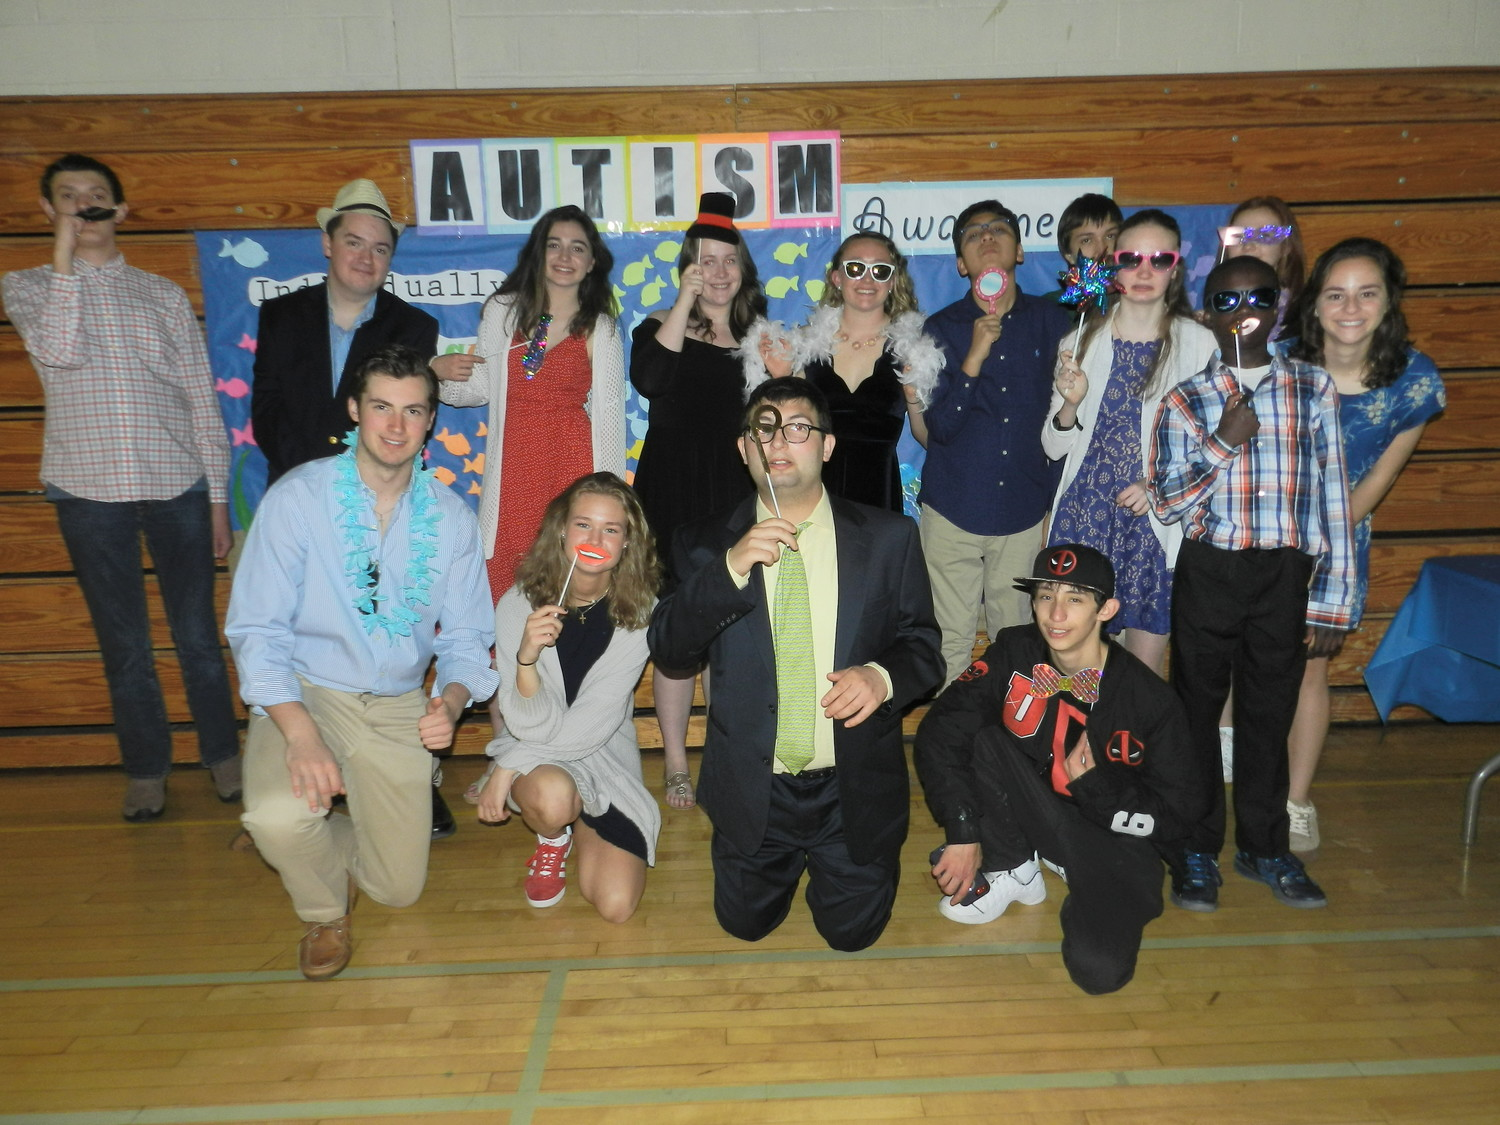 North Shore High School students gathered in the gym last Friday night for the first-ever Dance for Autism Awareness.